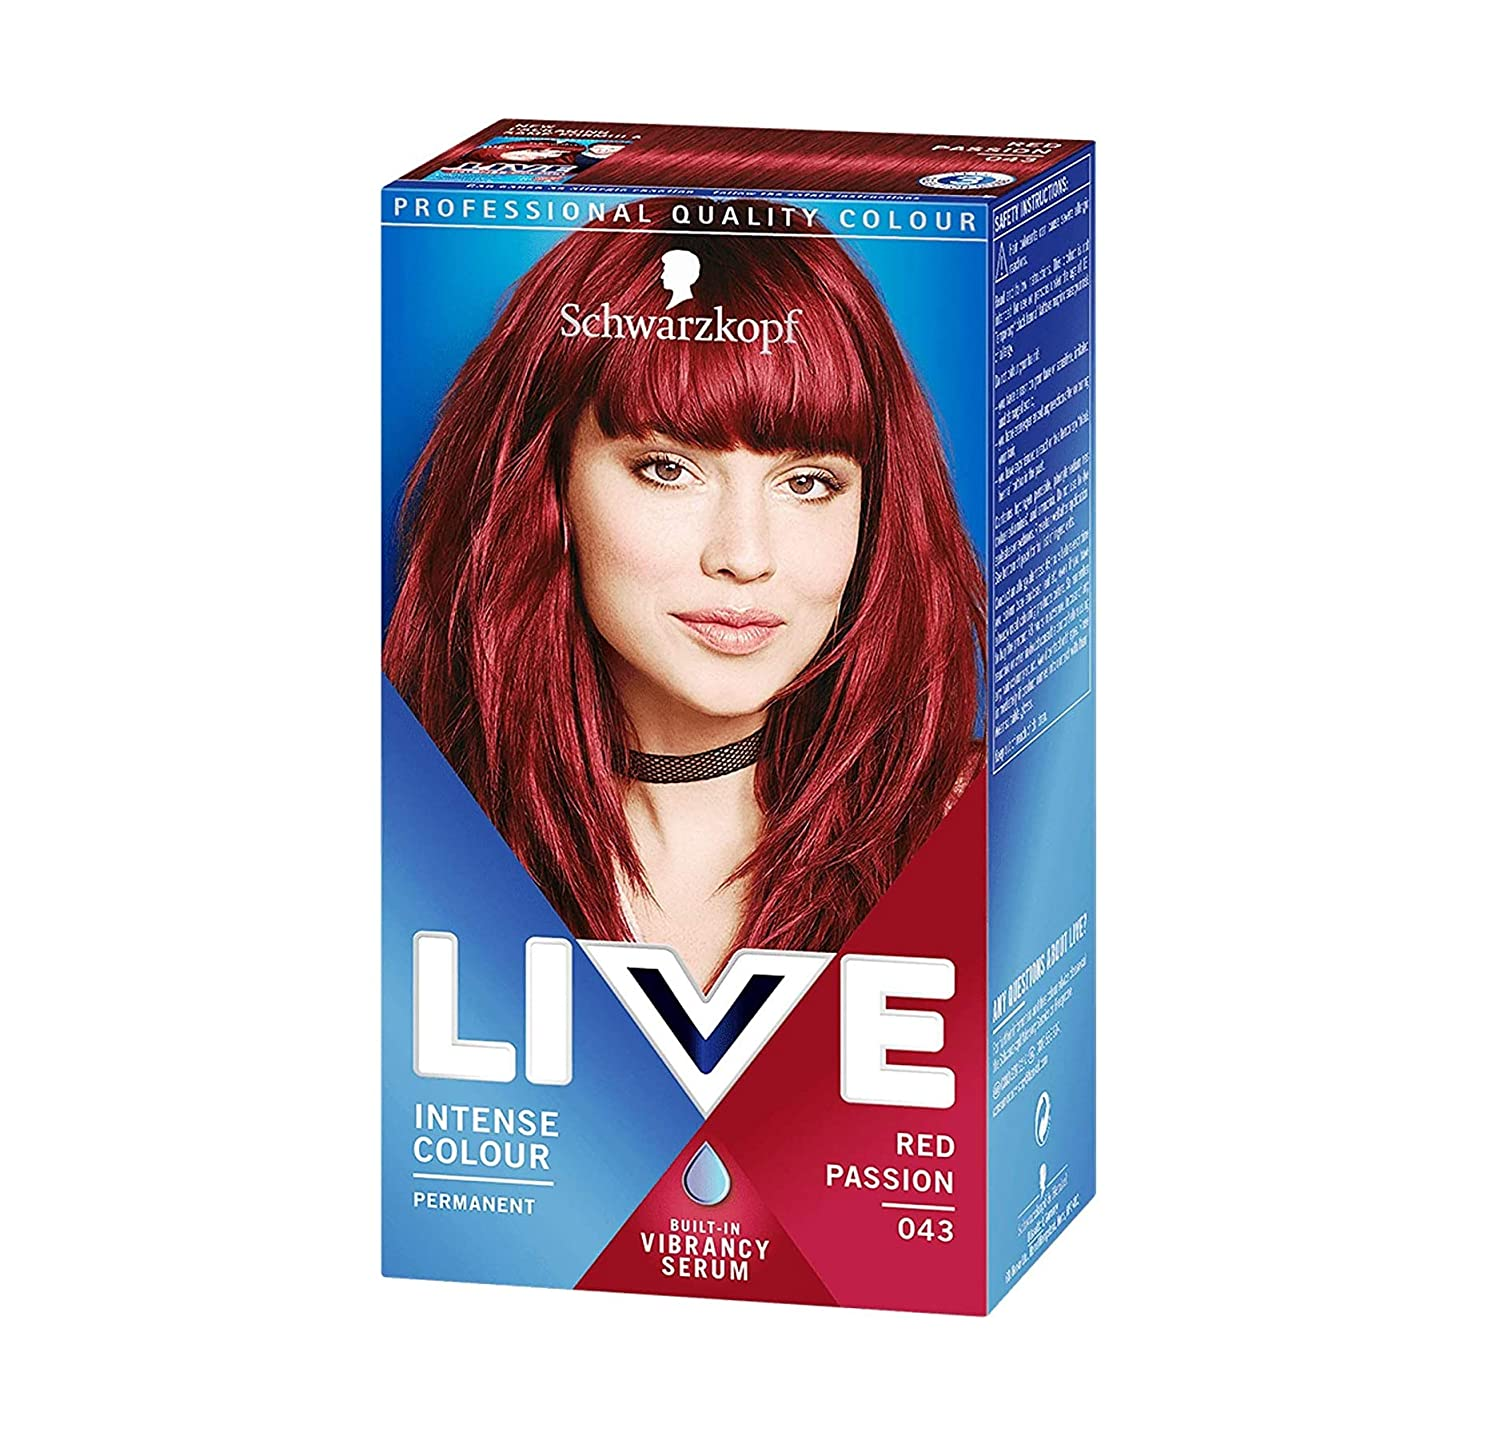 Schwarzkopf Live Intense Max 53% OFF half Permanent Hair Colour Red Passion Kit